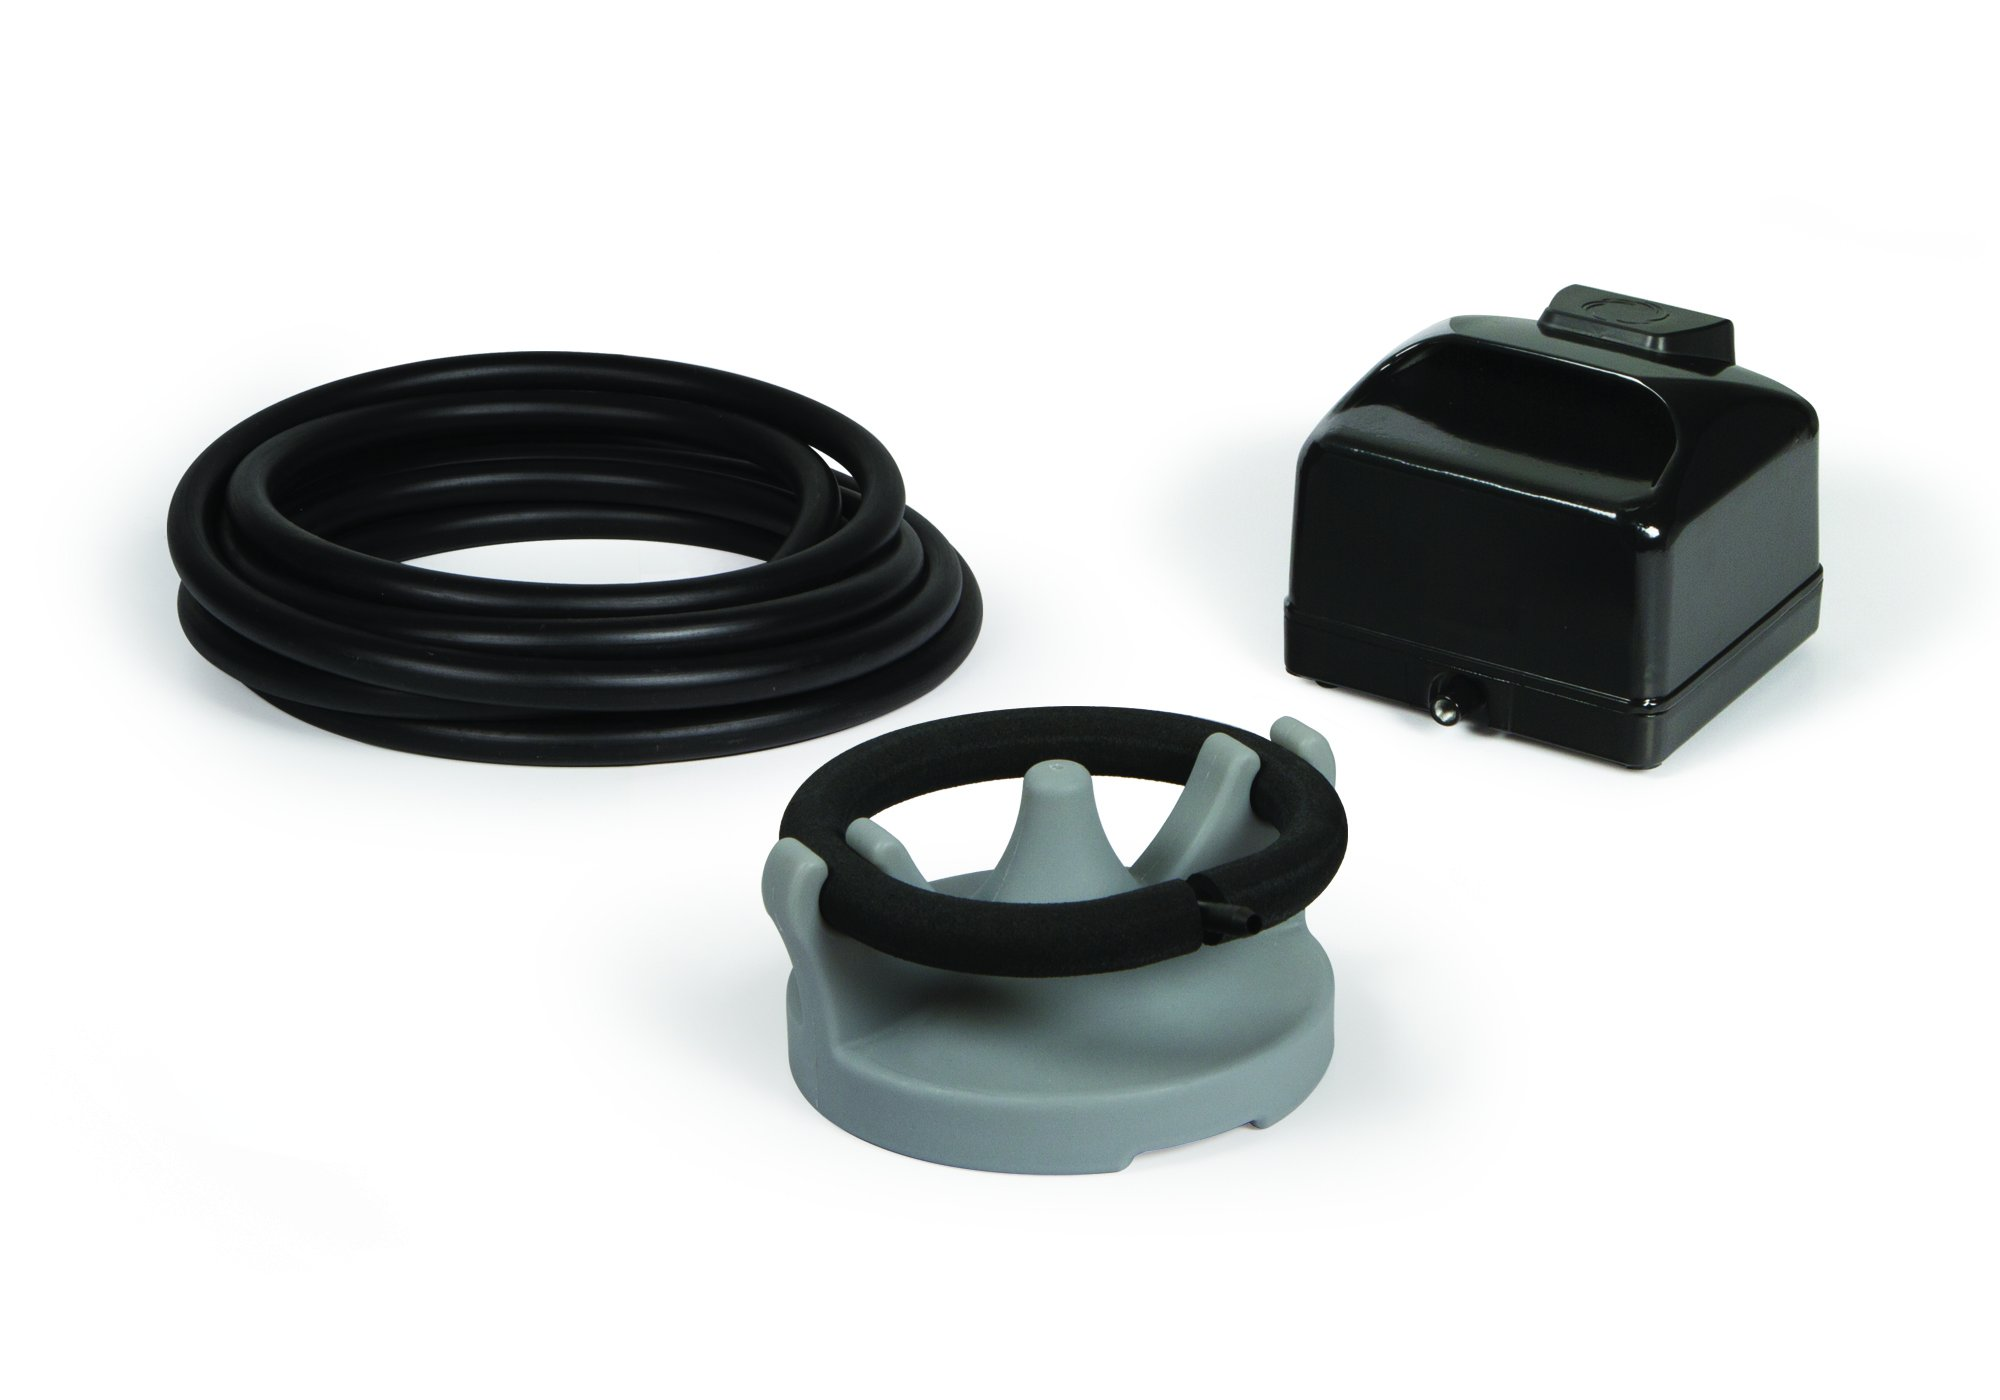 Atlantic Water Gardens Professional Aeration Kit with Weighted Tubing Aerates Ponds up to 6000 gallons